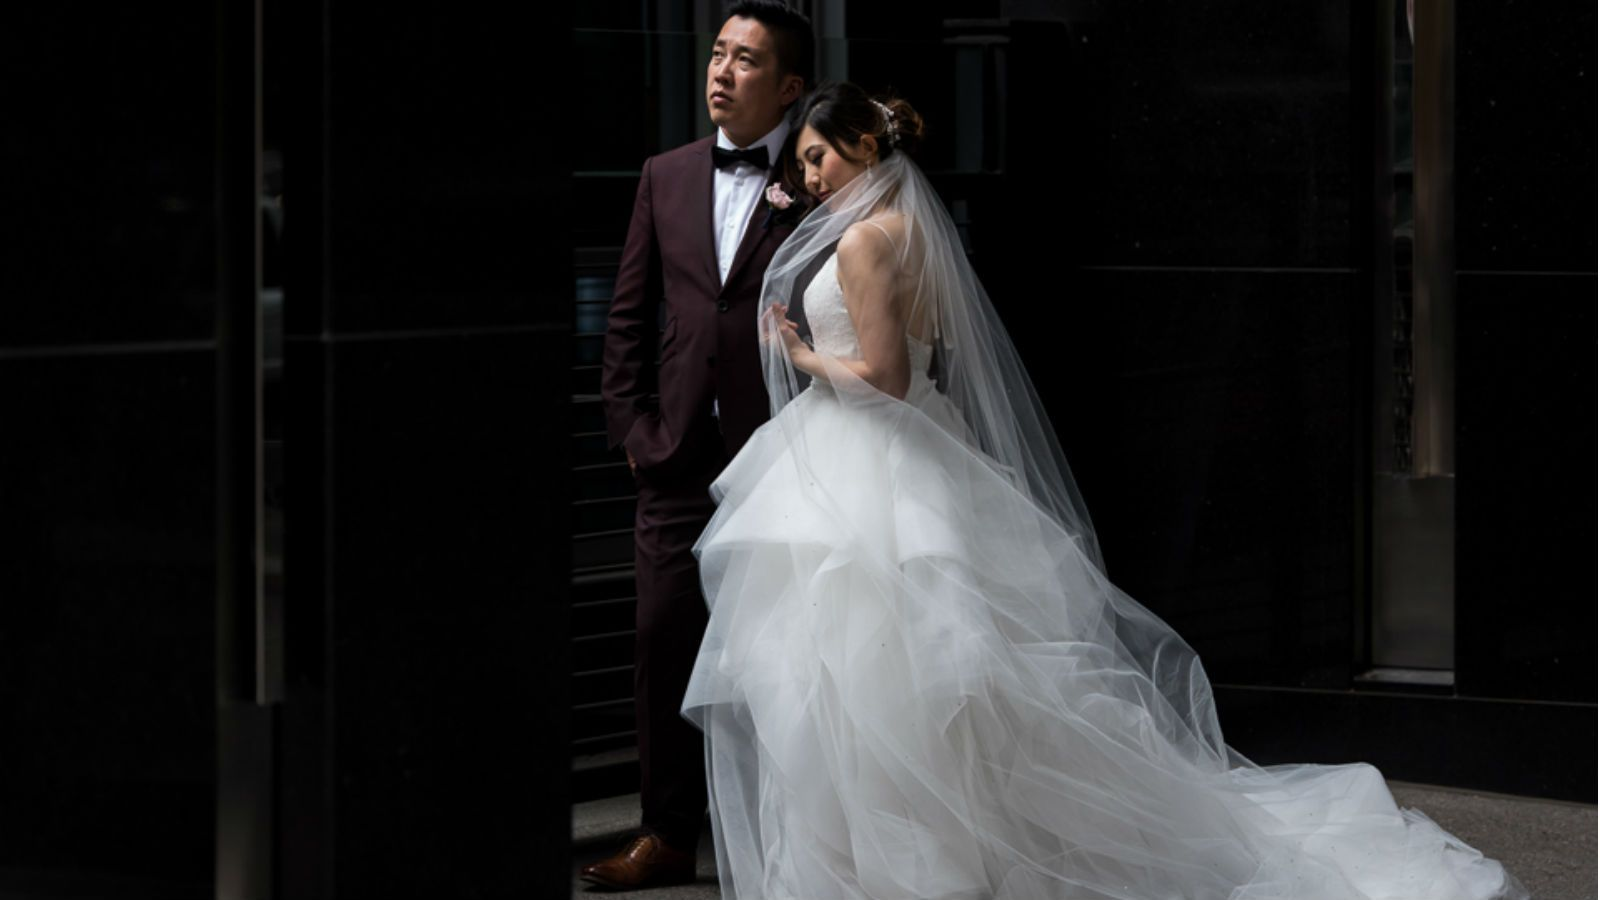 Downtown Calgary Wedding Venues - Real Wedding